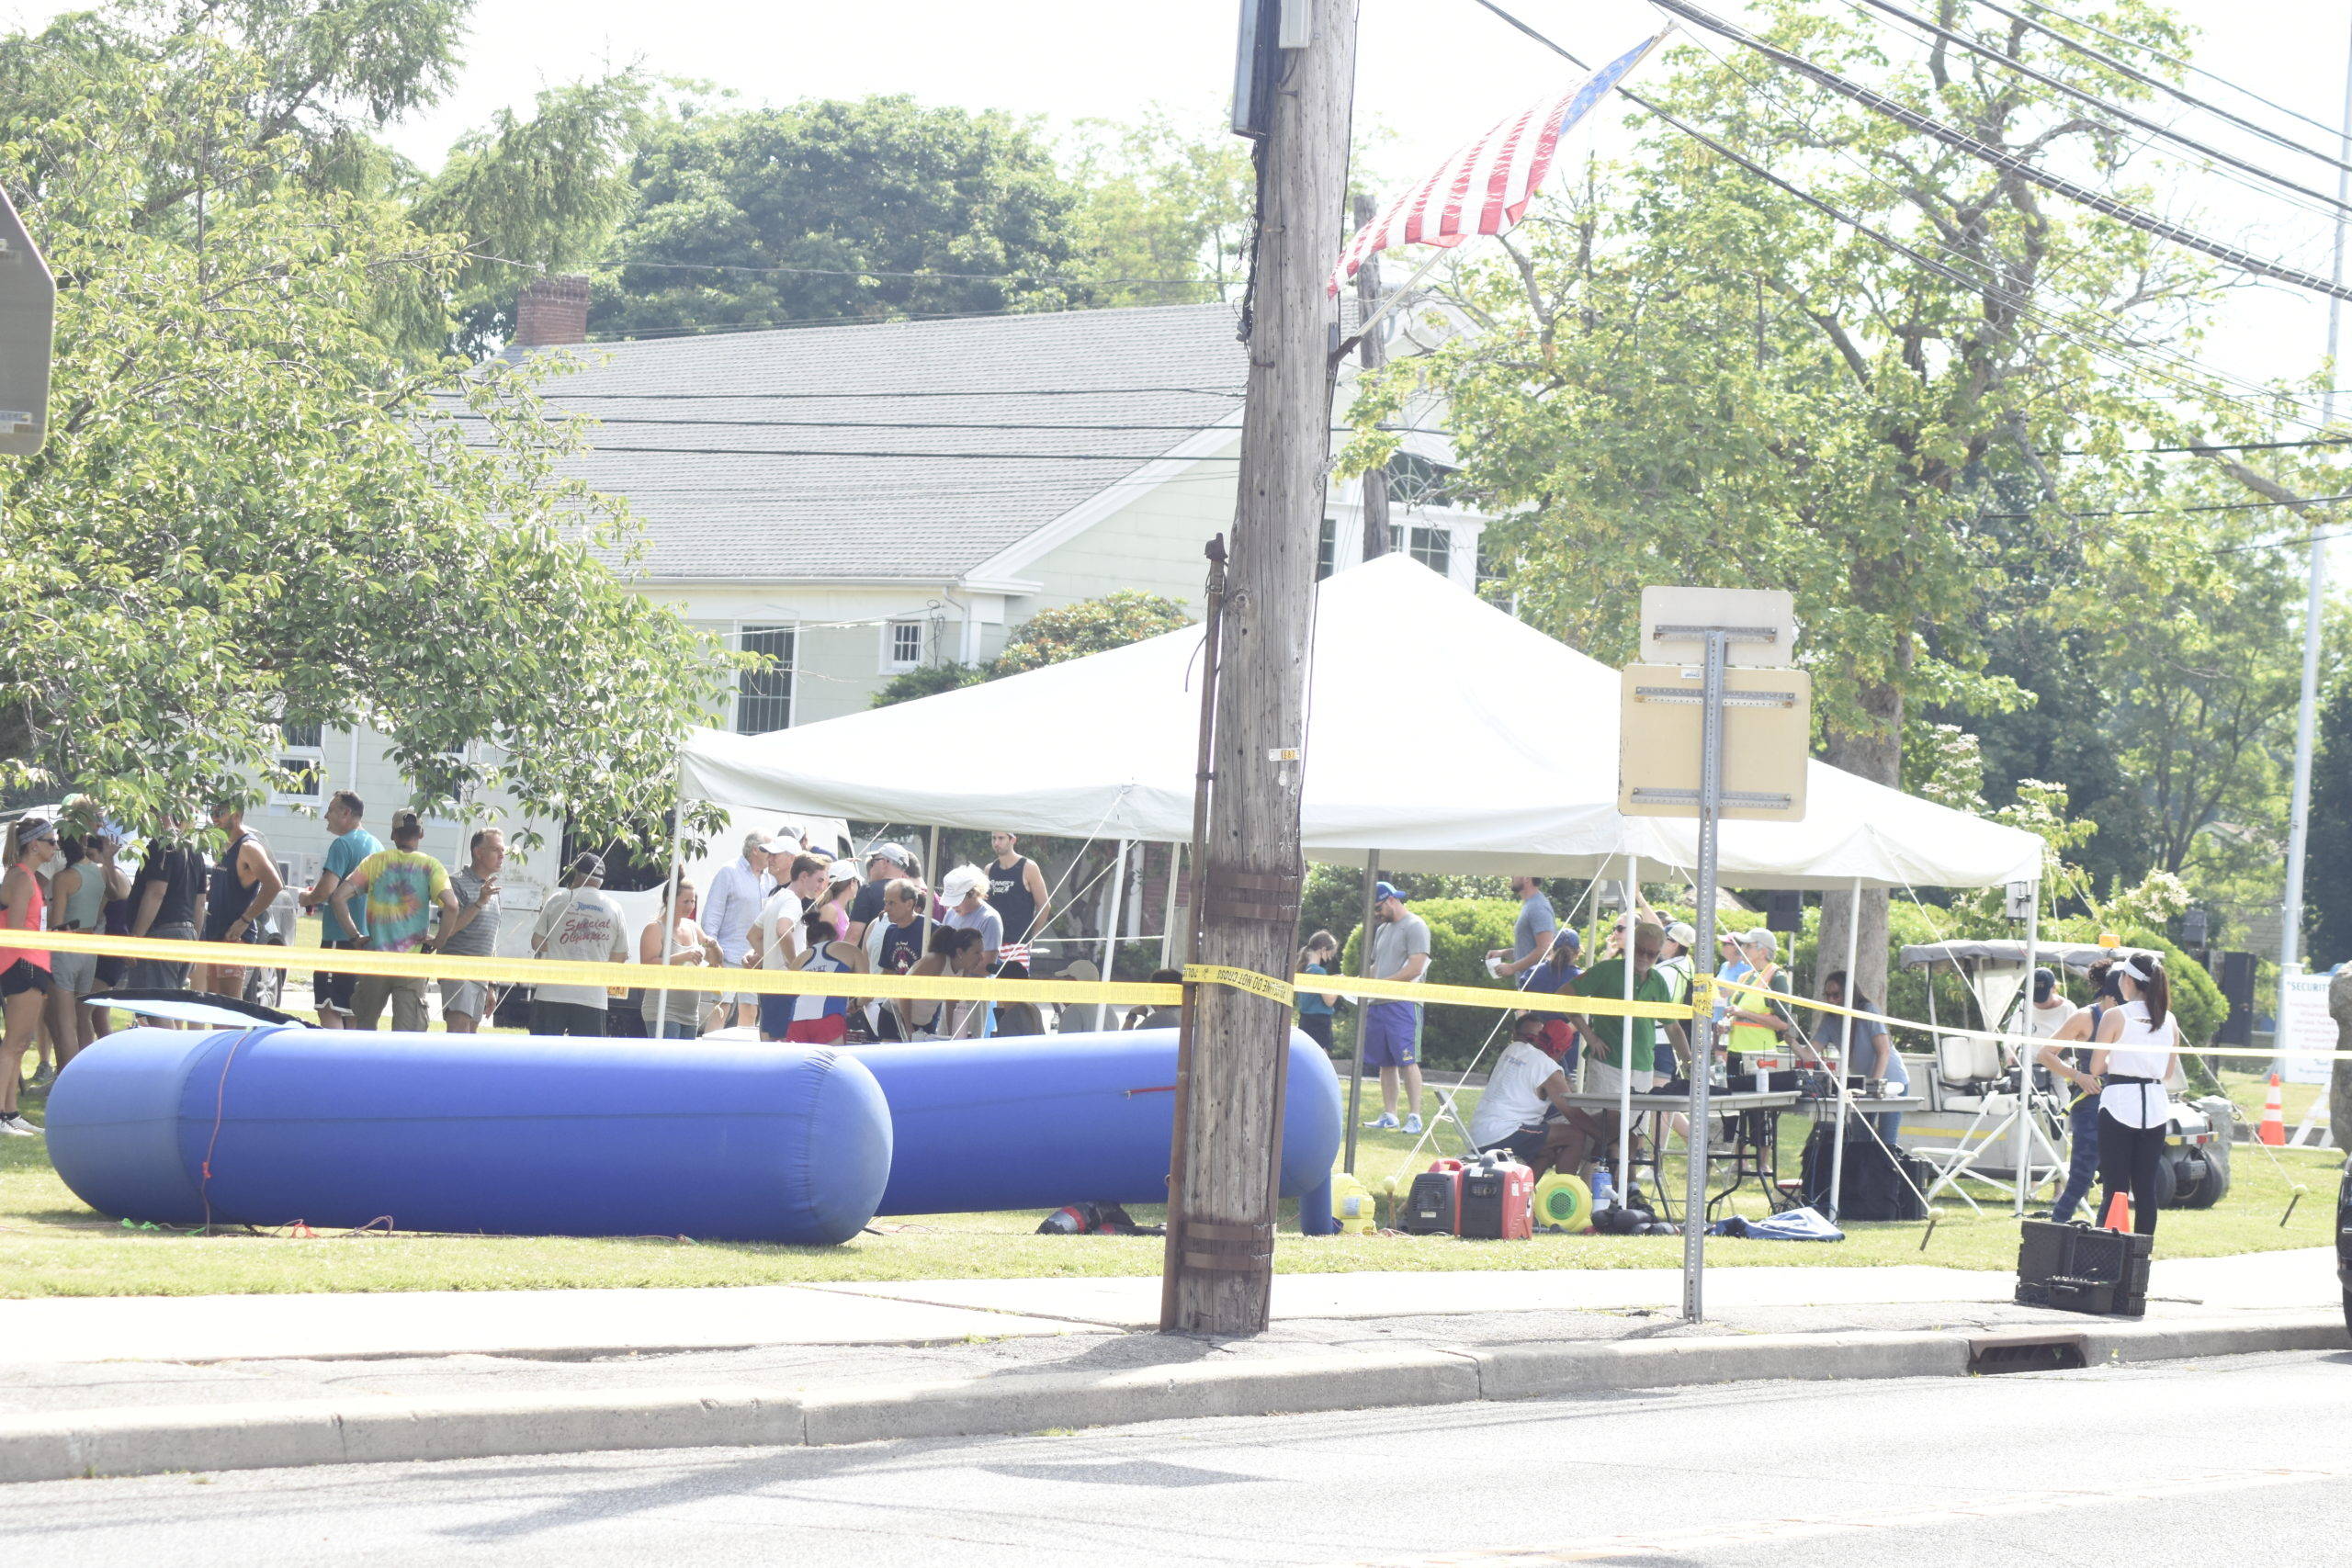 With no vendors or spectators allowed, there were less crowds at the 42nd annual Shelter Island 10K on Saturday.